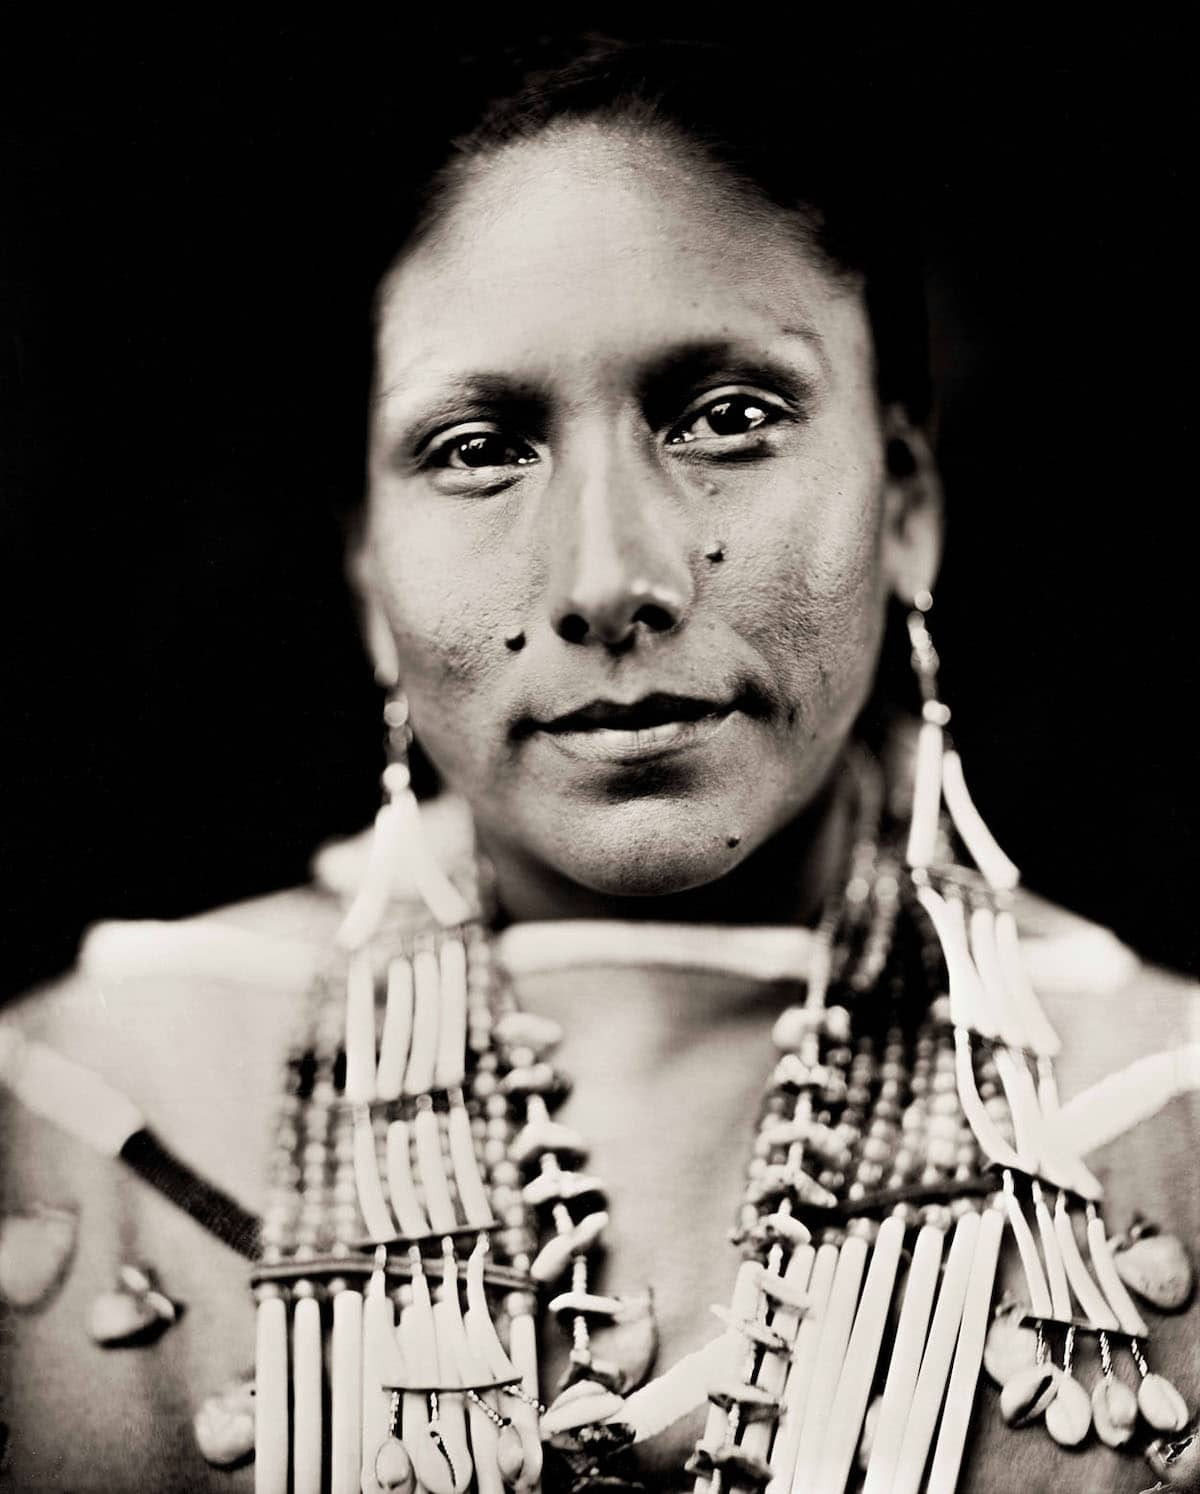 Portrait of Northern Plains Native American